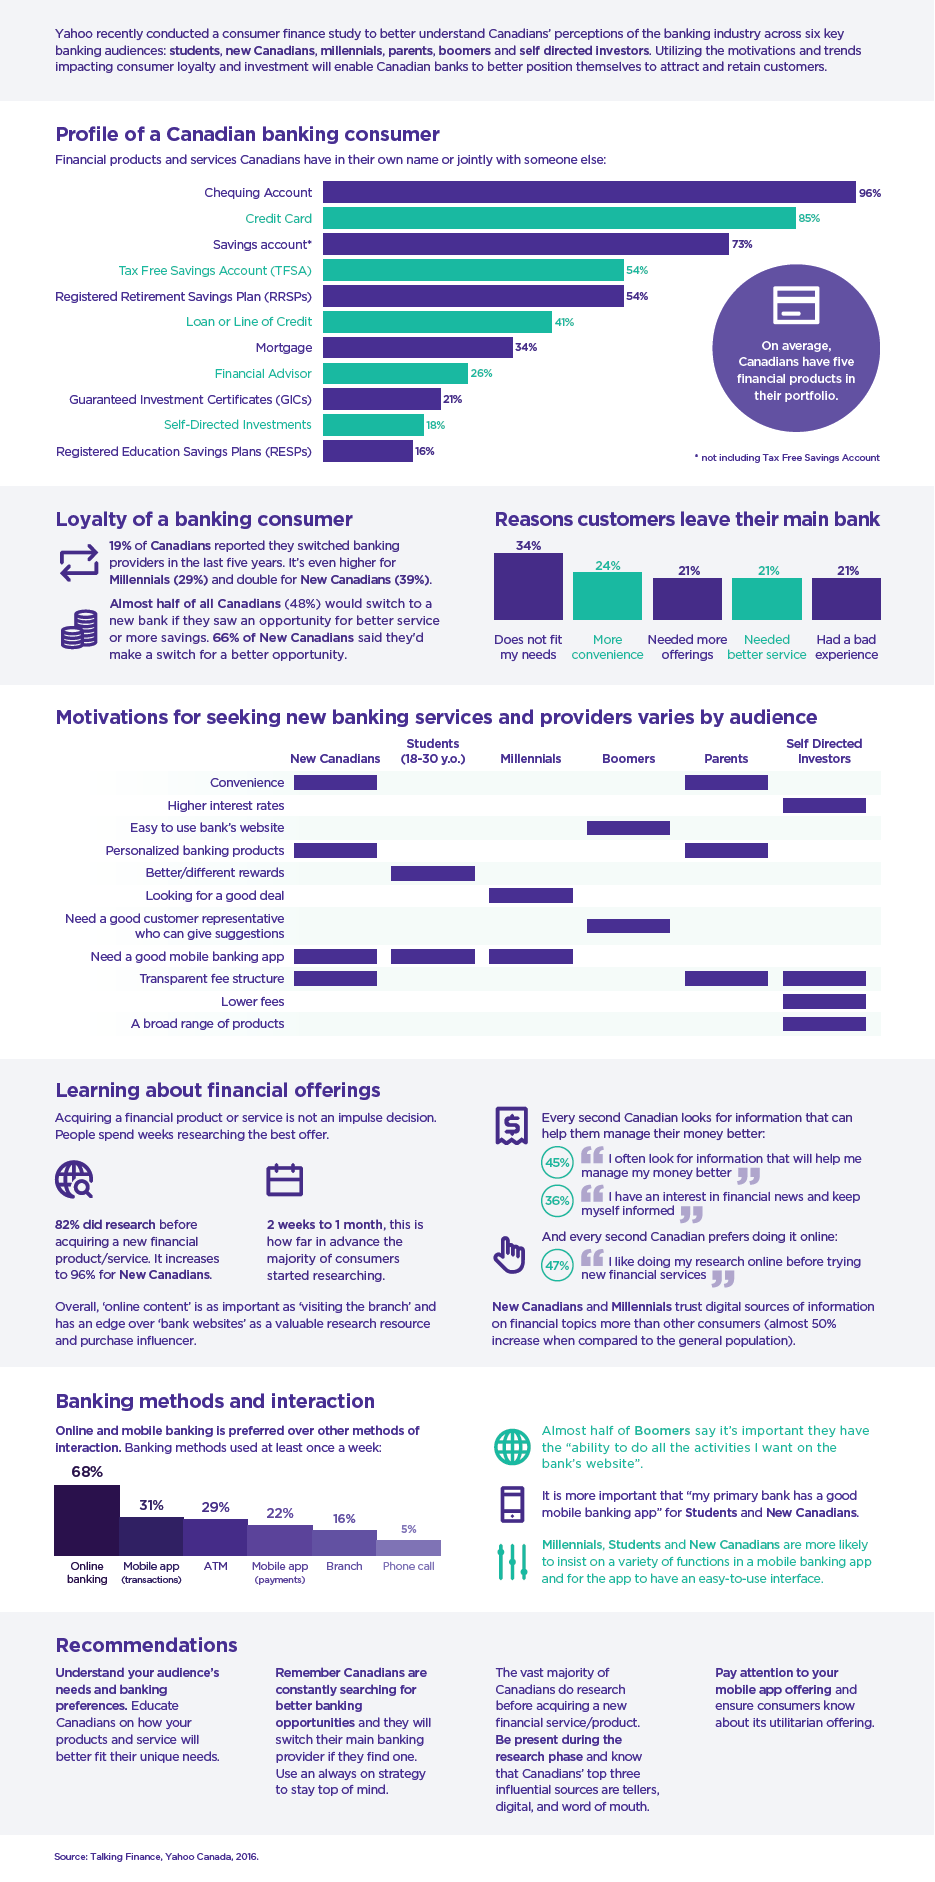 Yahoo Talking Finance infographic